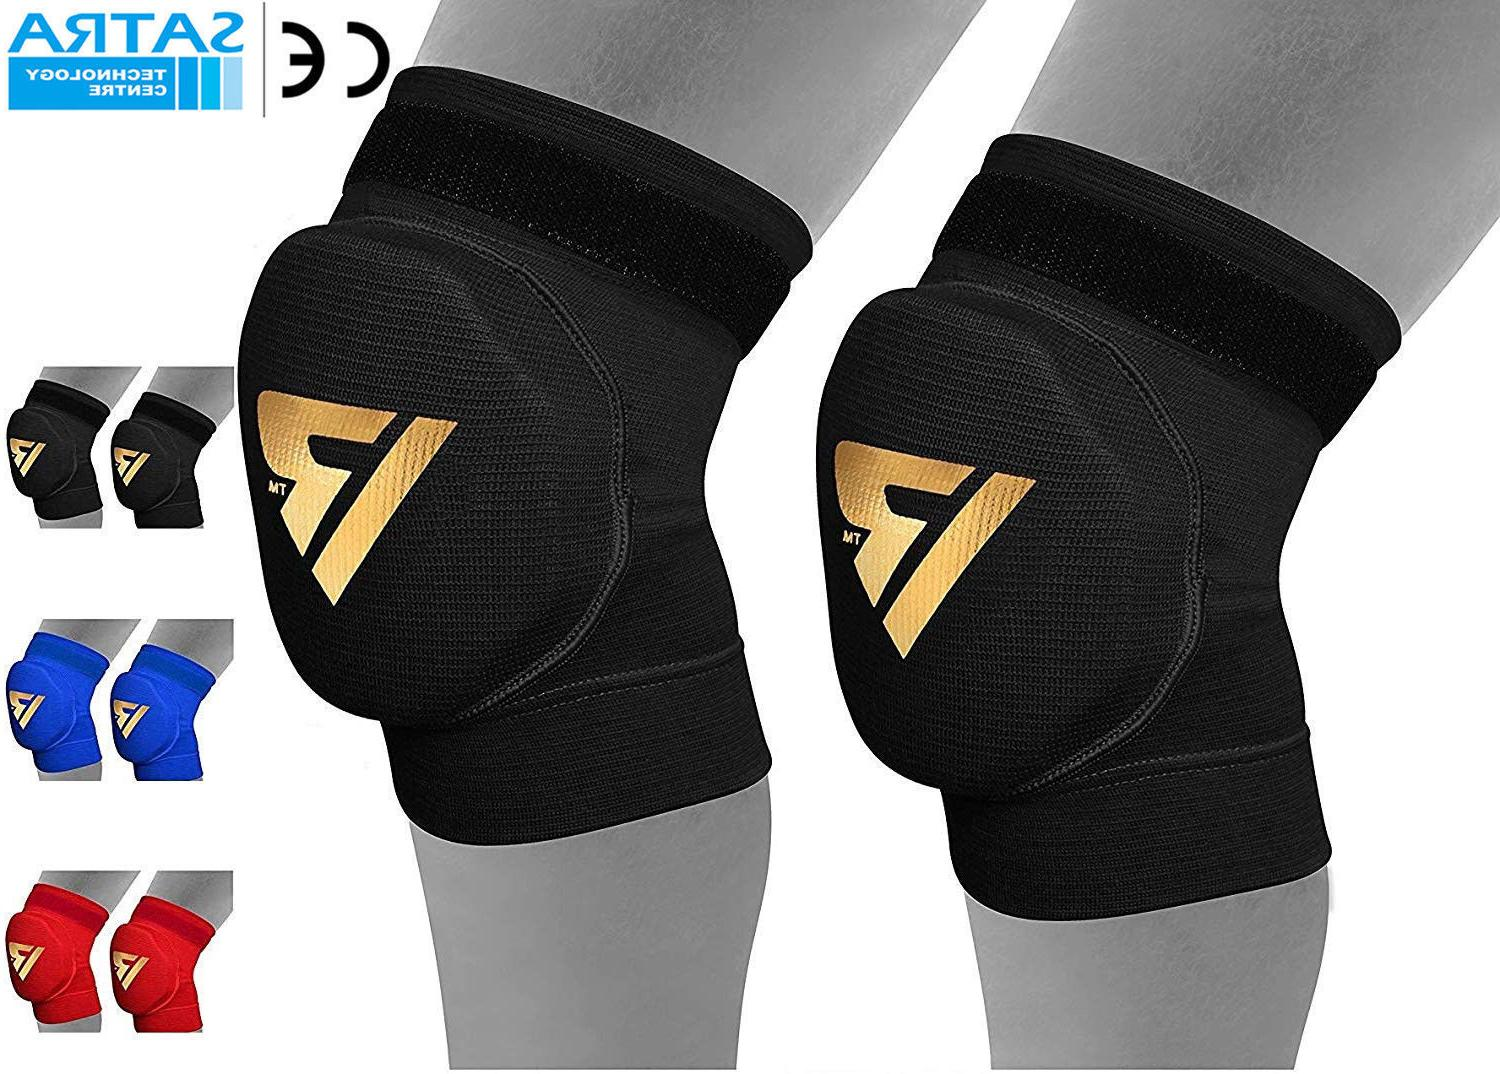 mma knee pads caps protector brace support